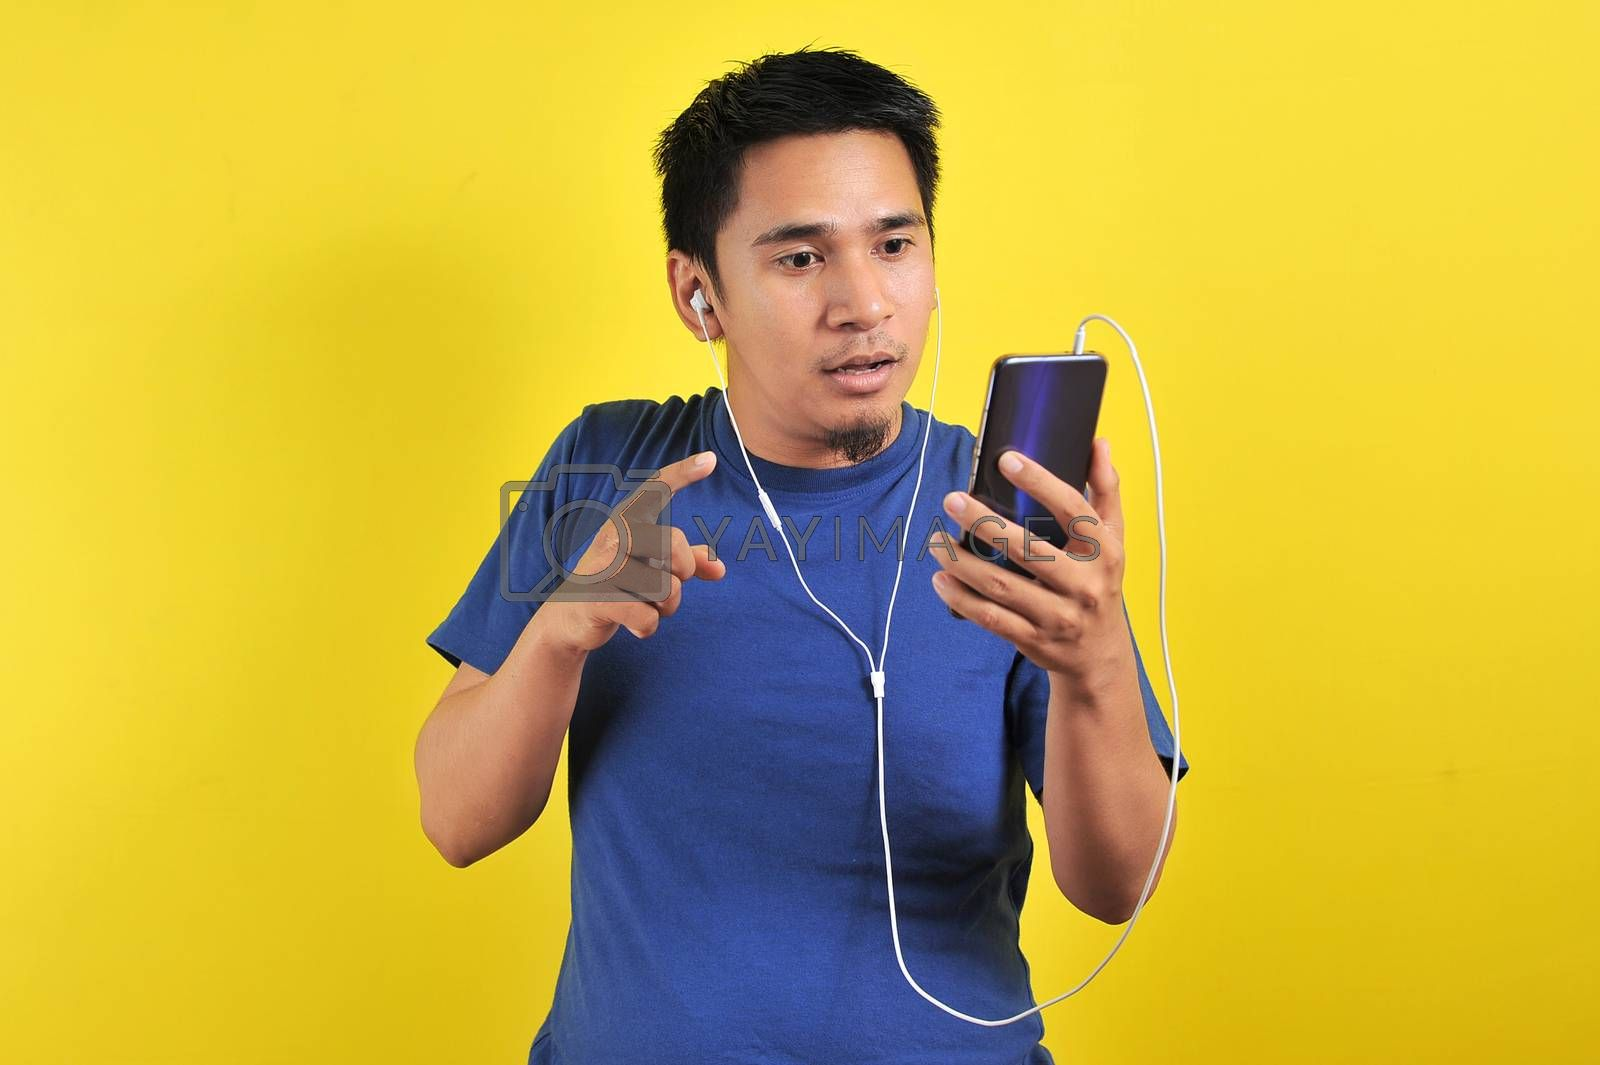 Asian man in casual blue t-shirt wearing headset listening to music from smartphone, shock expression, on yellow background